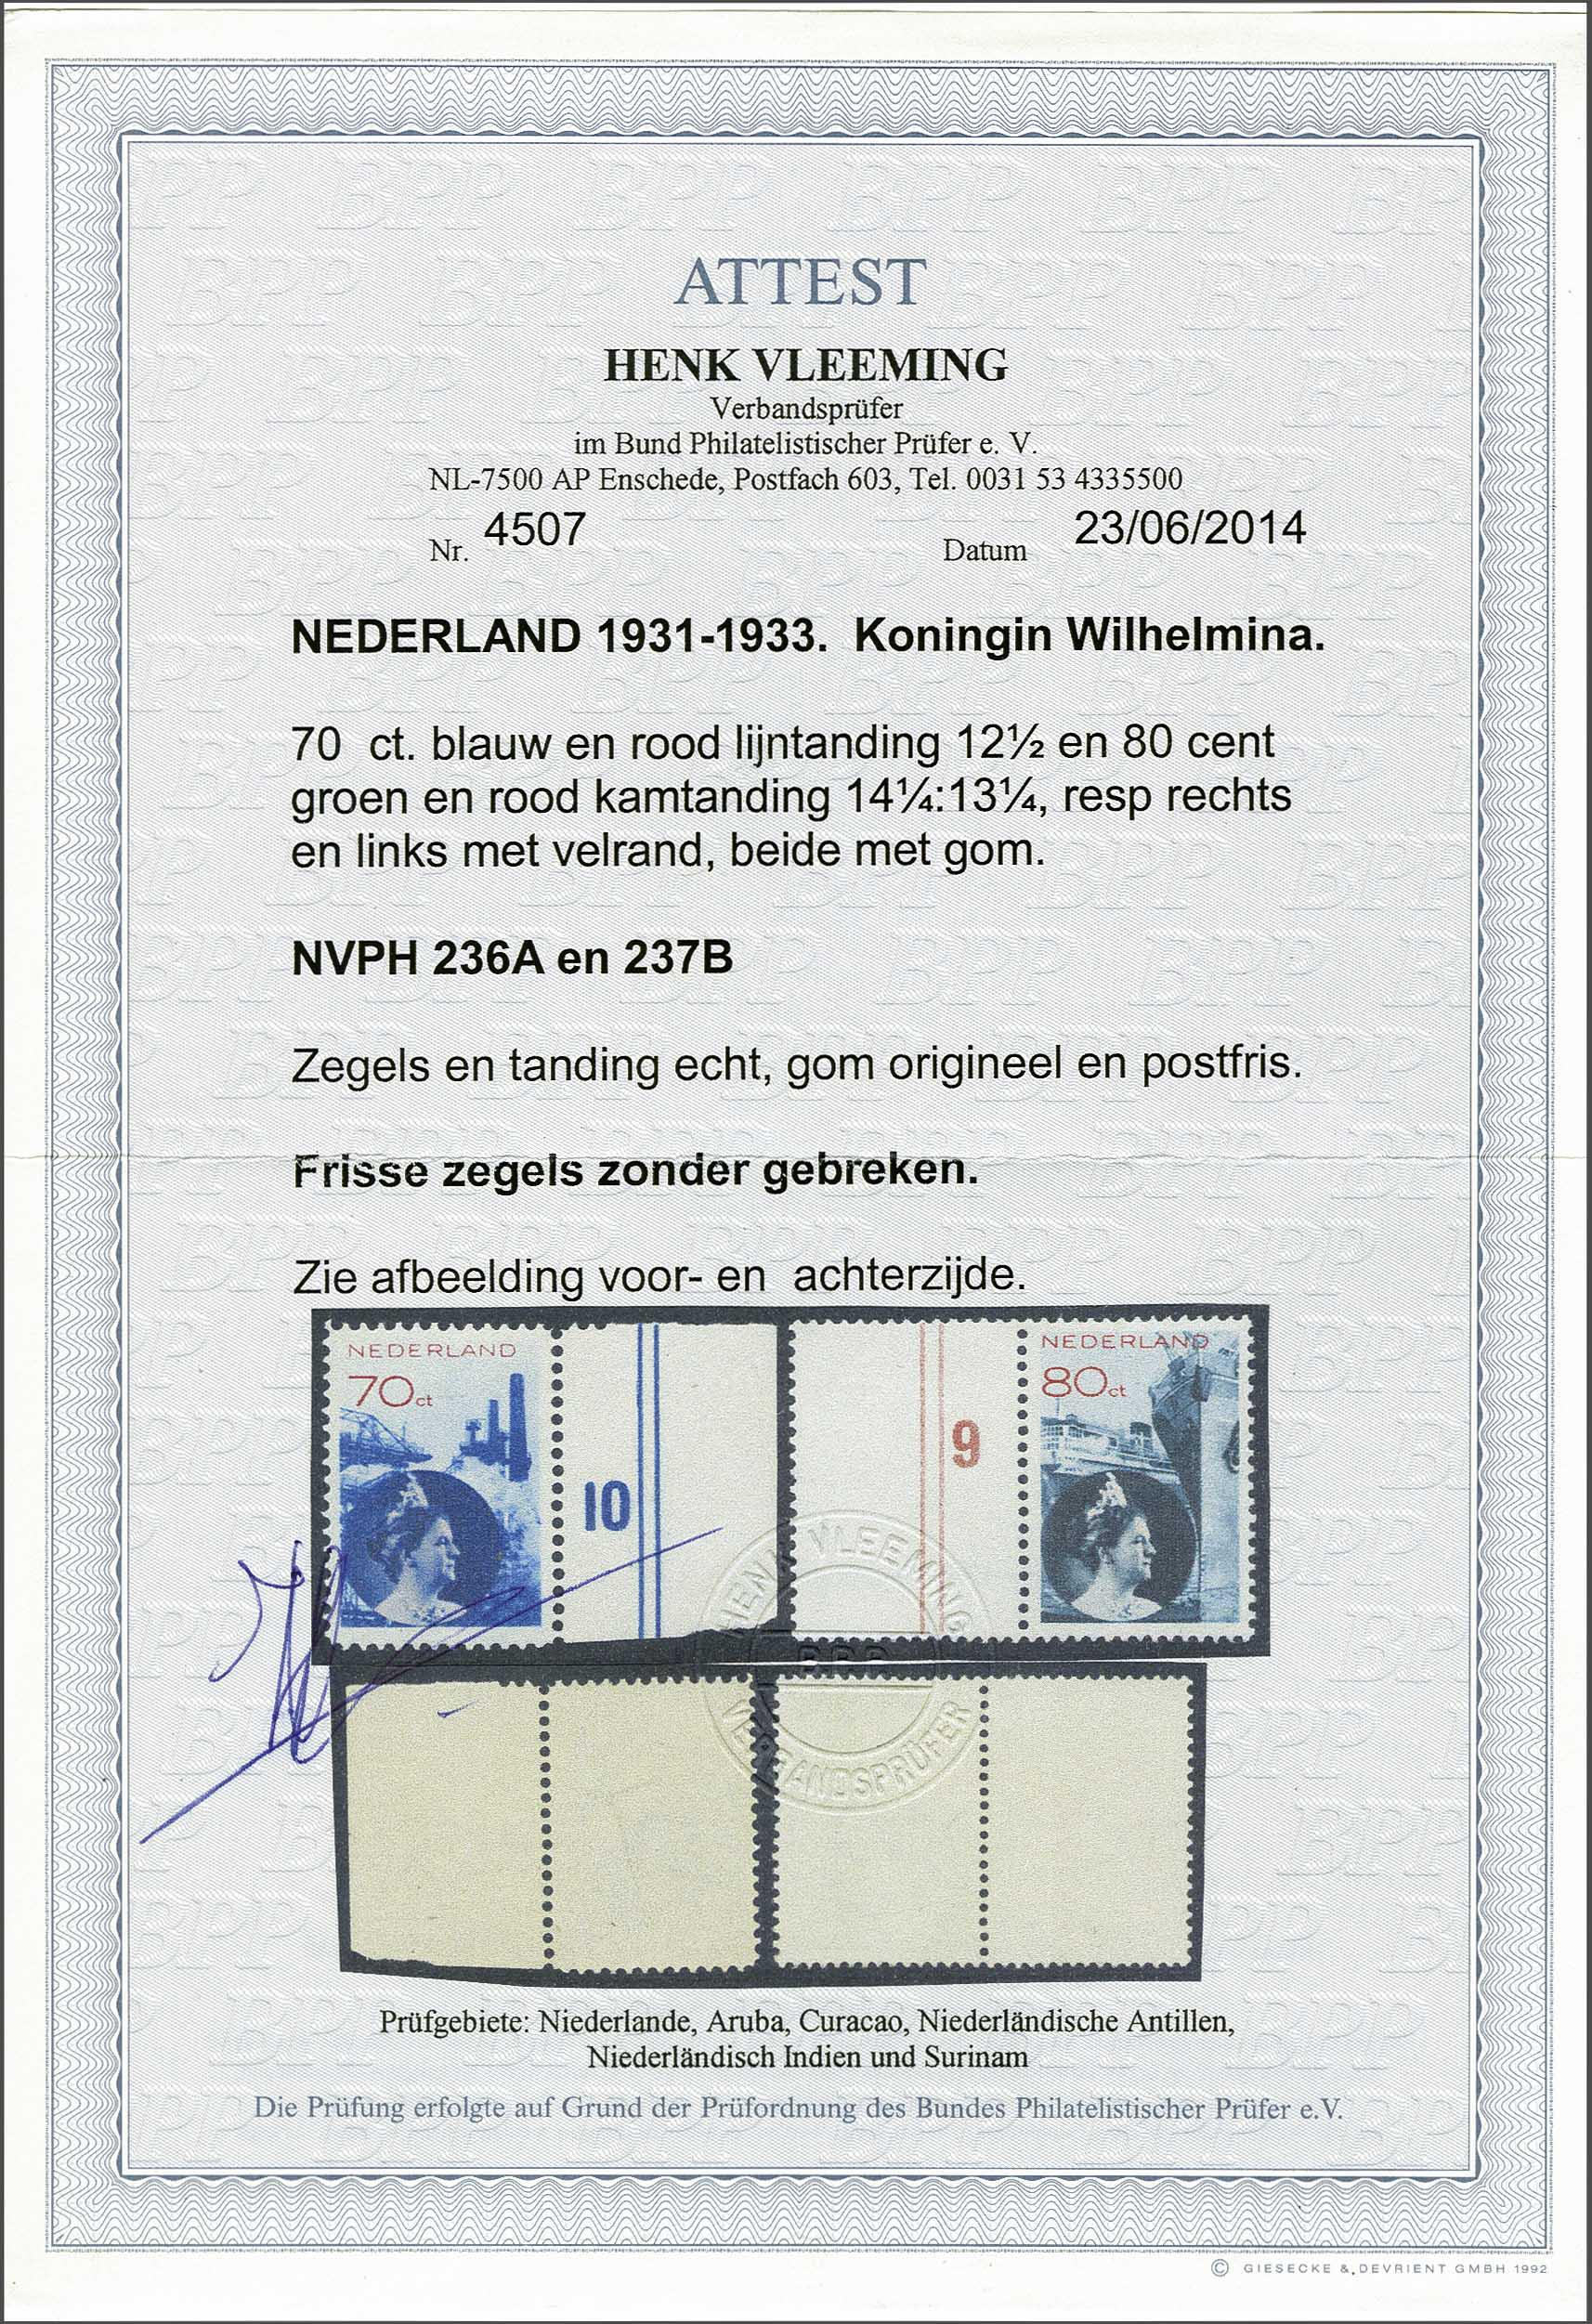 Lot 1873 - Netherlands and former colonies Netherlands -  Corinphila Veilingen Auction 245-246 Day 3 - Netherlands and former colonies - Single lots, Collections and lots, Boxes and literature